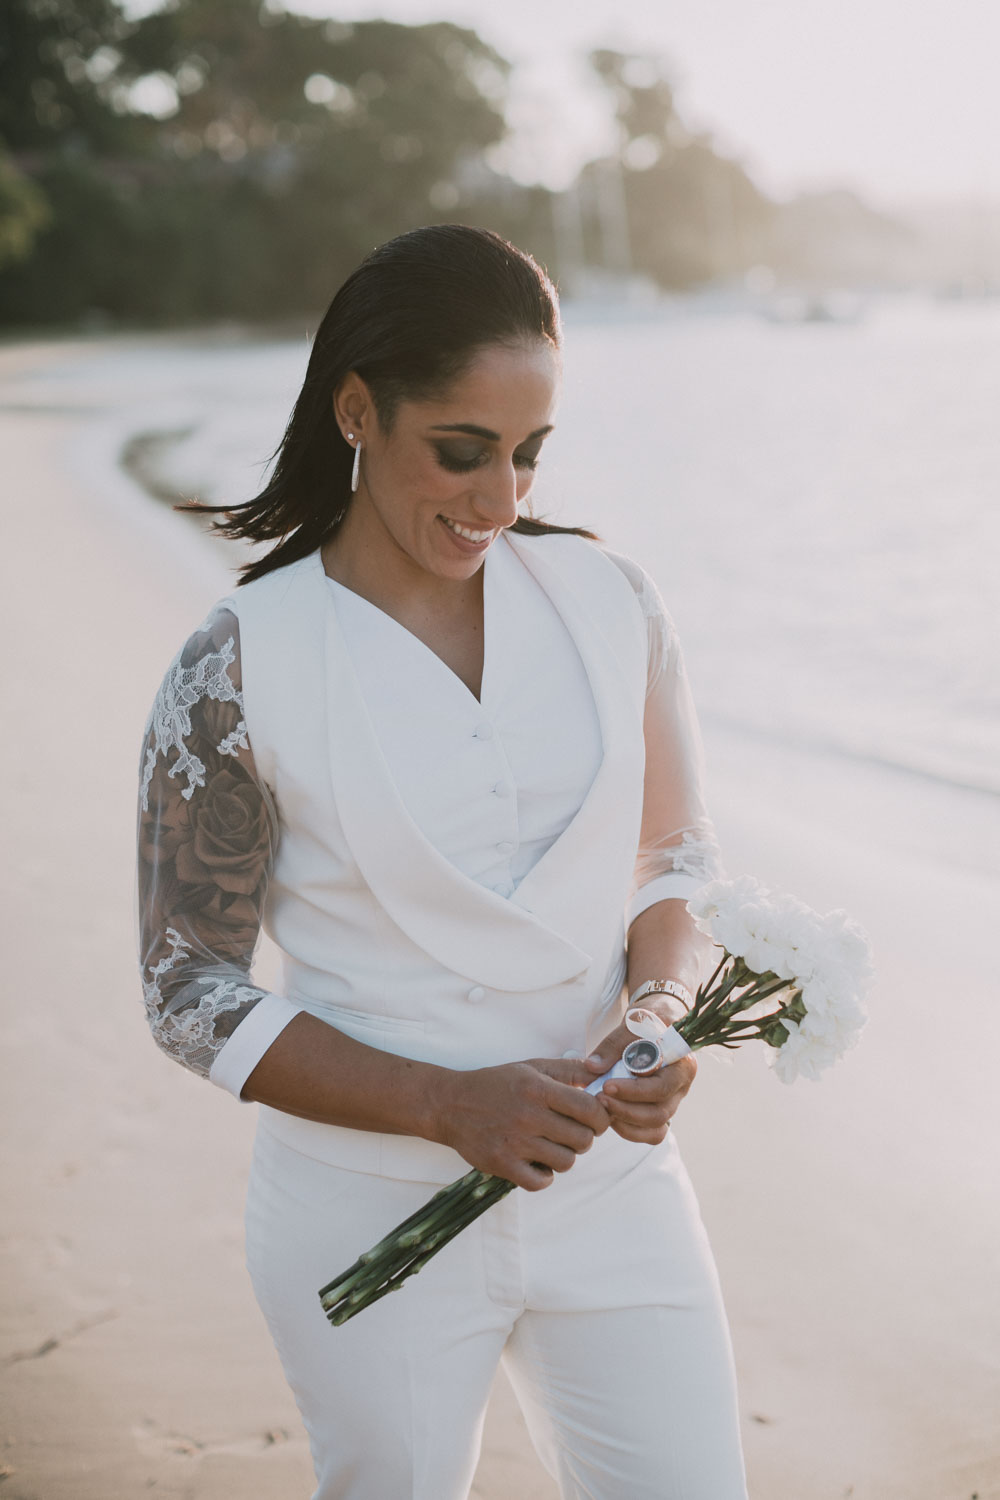 Beach House Avalon Sydney Same Sex Wedding Wedding Kat Rollings Photography bride looking at her flowers on the beach